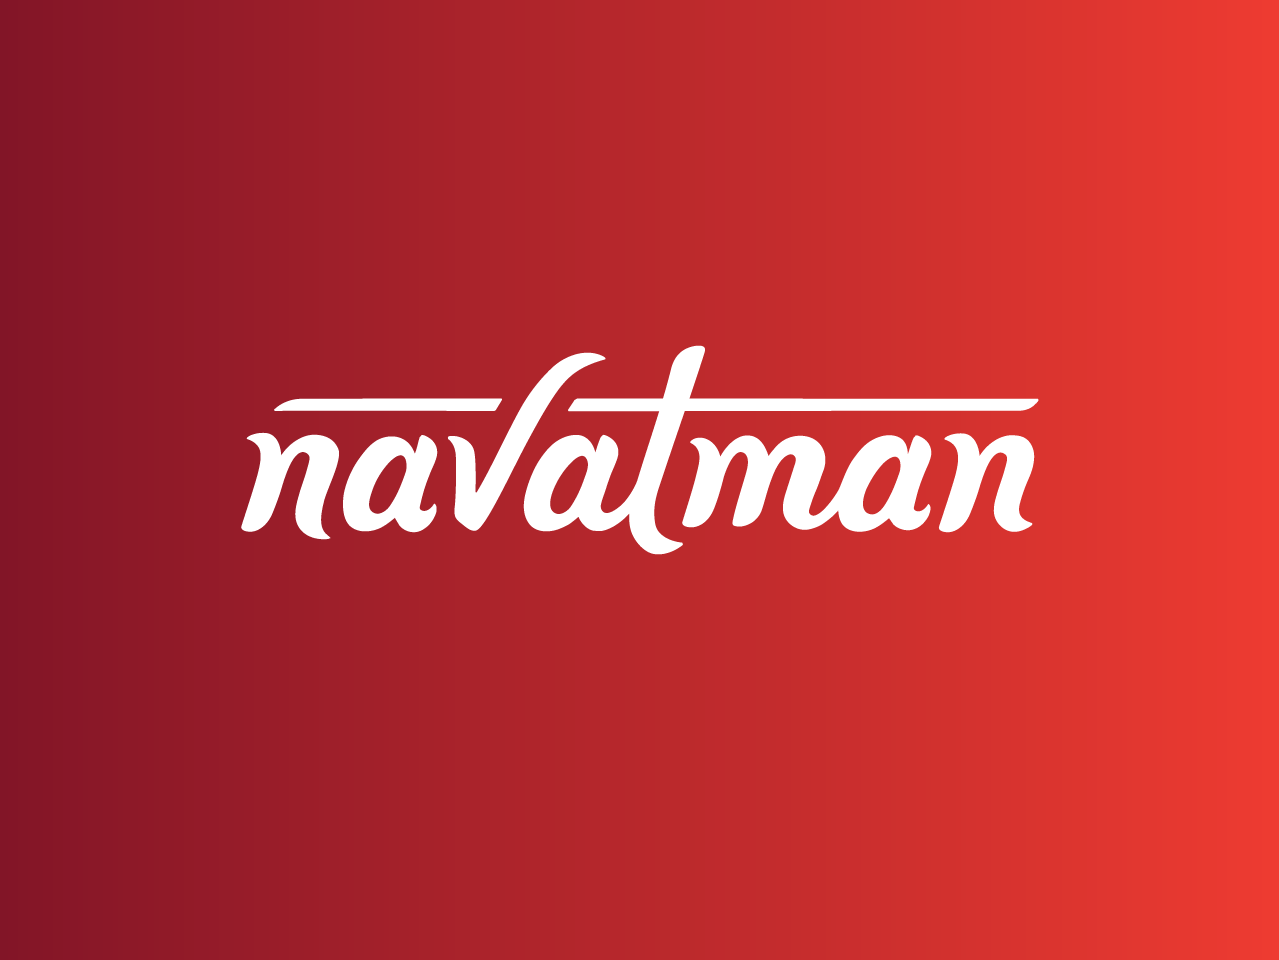 Navatman is a South Asian performing arts school and cultural center in New York City.